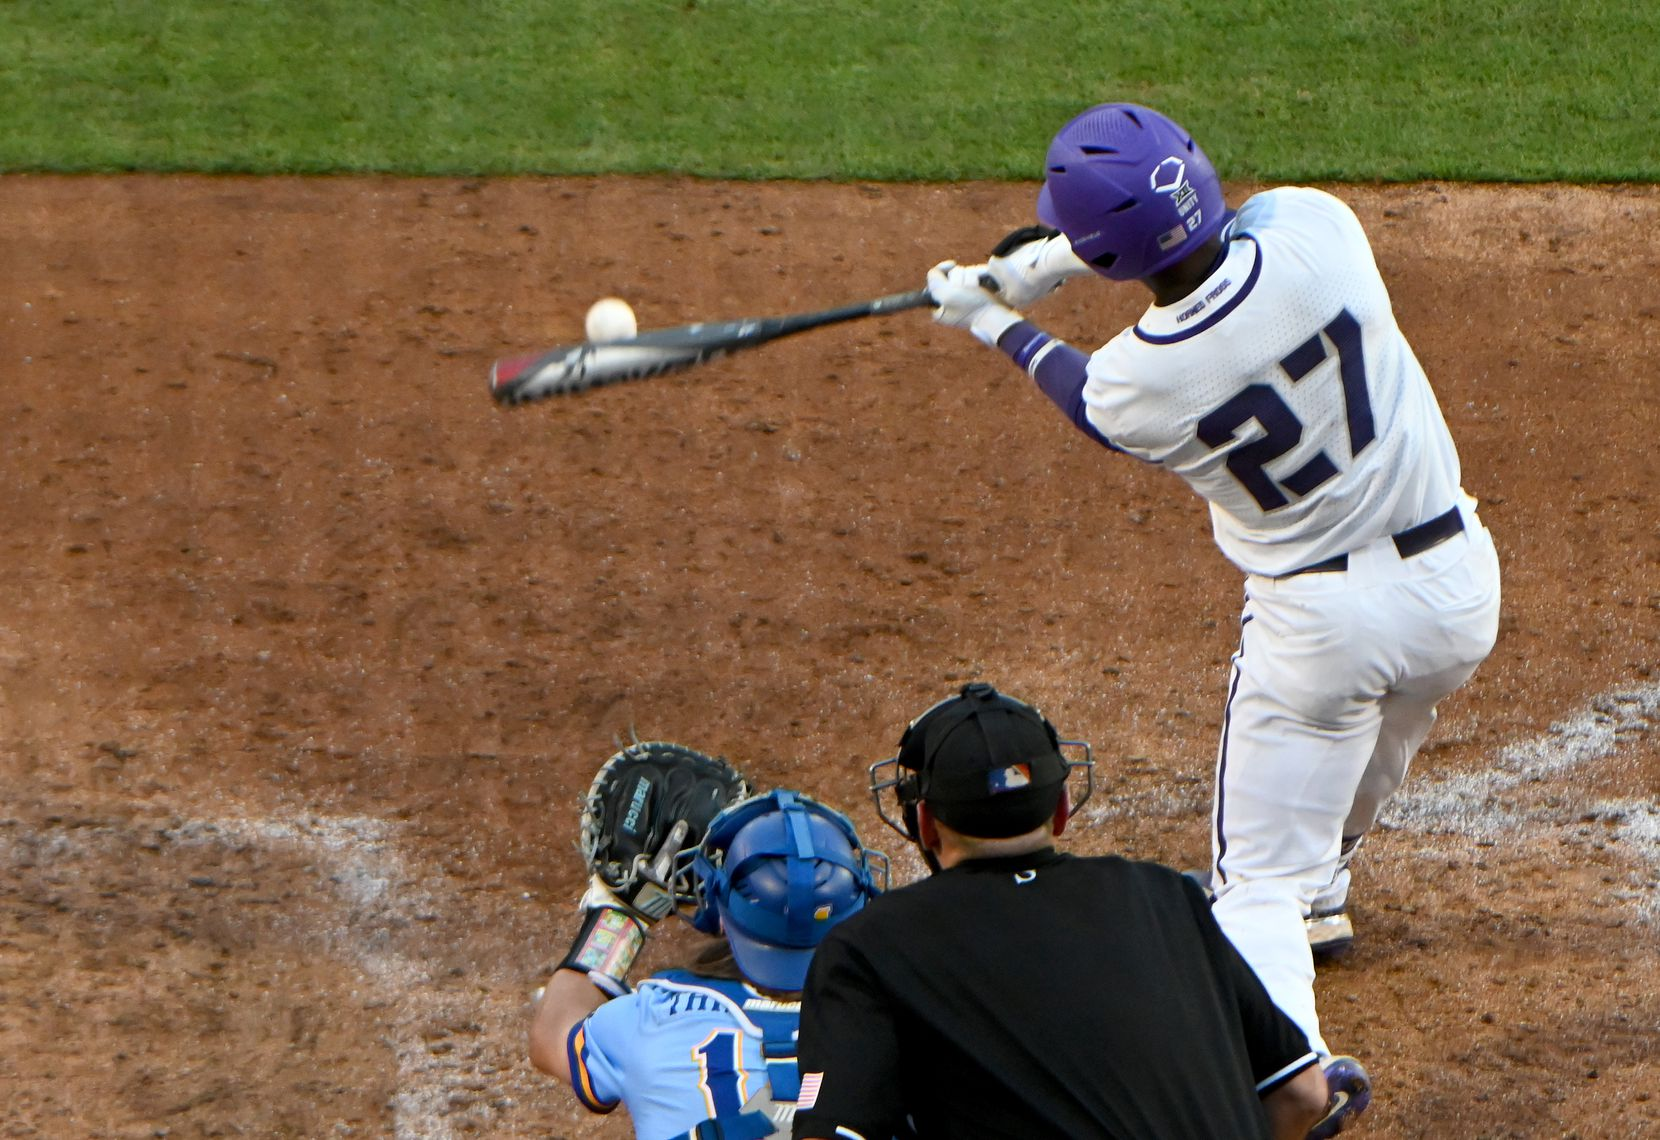 TCU outfielder Porter Brown (27) connects for a single to start the seventh inning of their game against against McNeese State in the Fort Worth Regional NCAA baseball tournament, Friday, June 4, 2021, in Fort Worth, Texas. (Matt Strasen/Special Contributor)